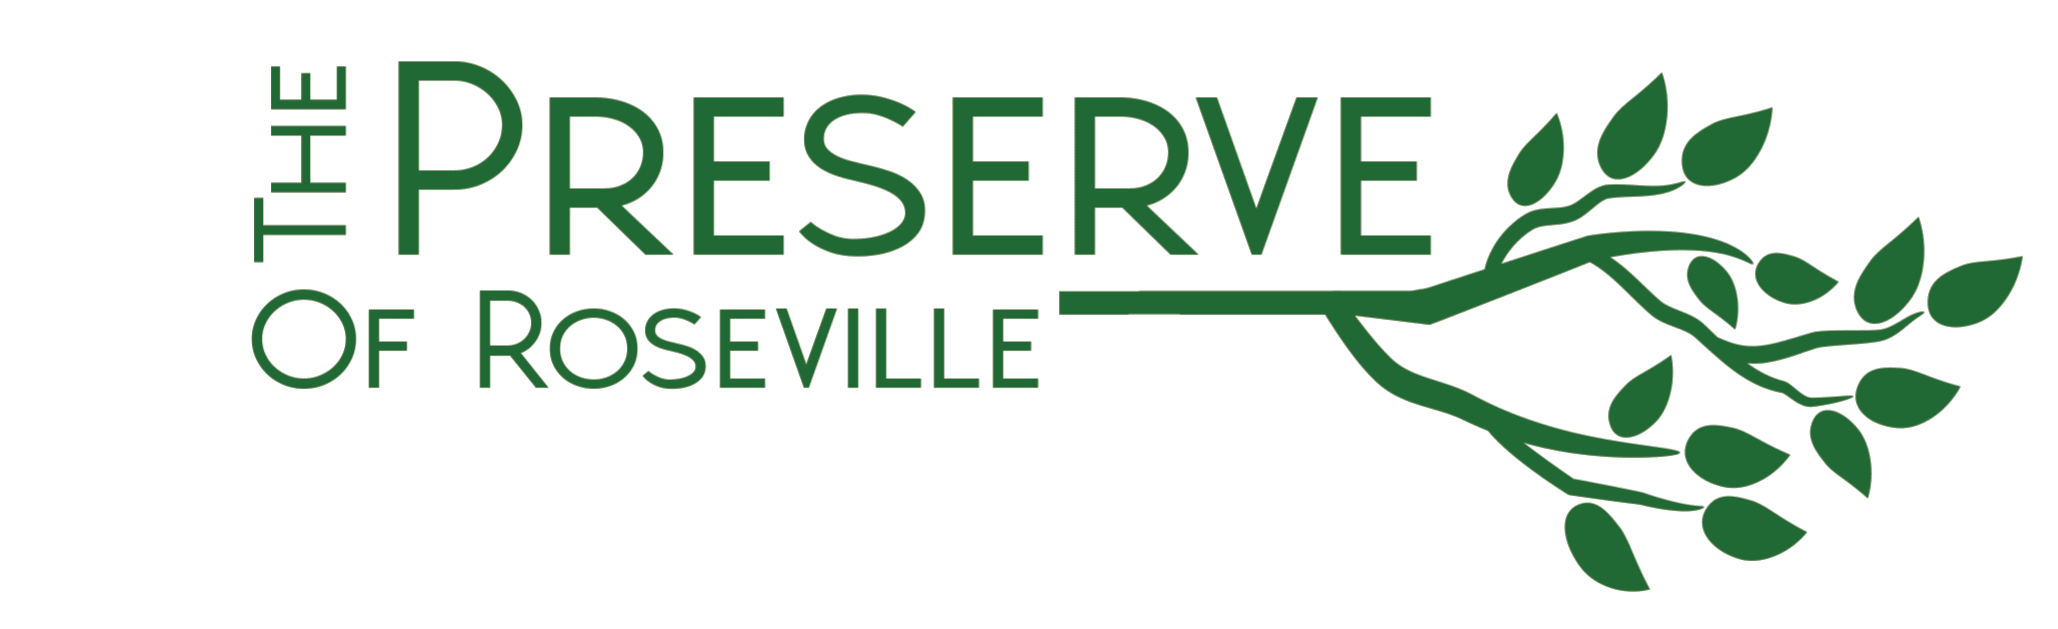 The Preserve of Roseville Logo